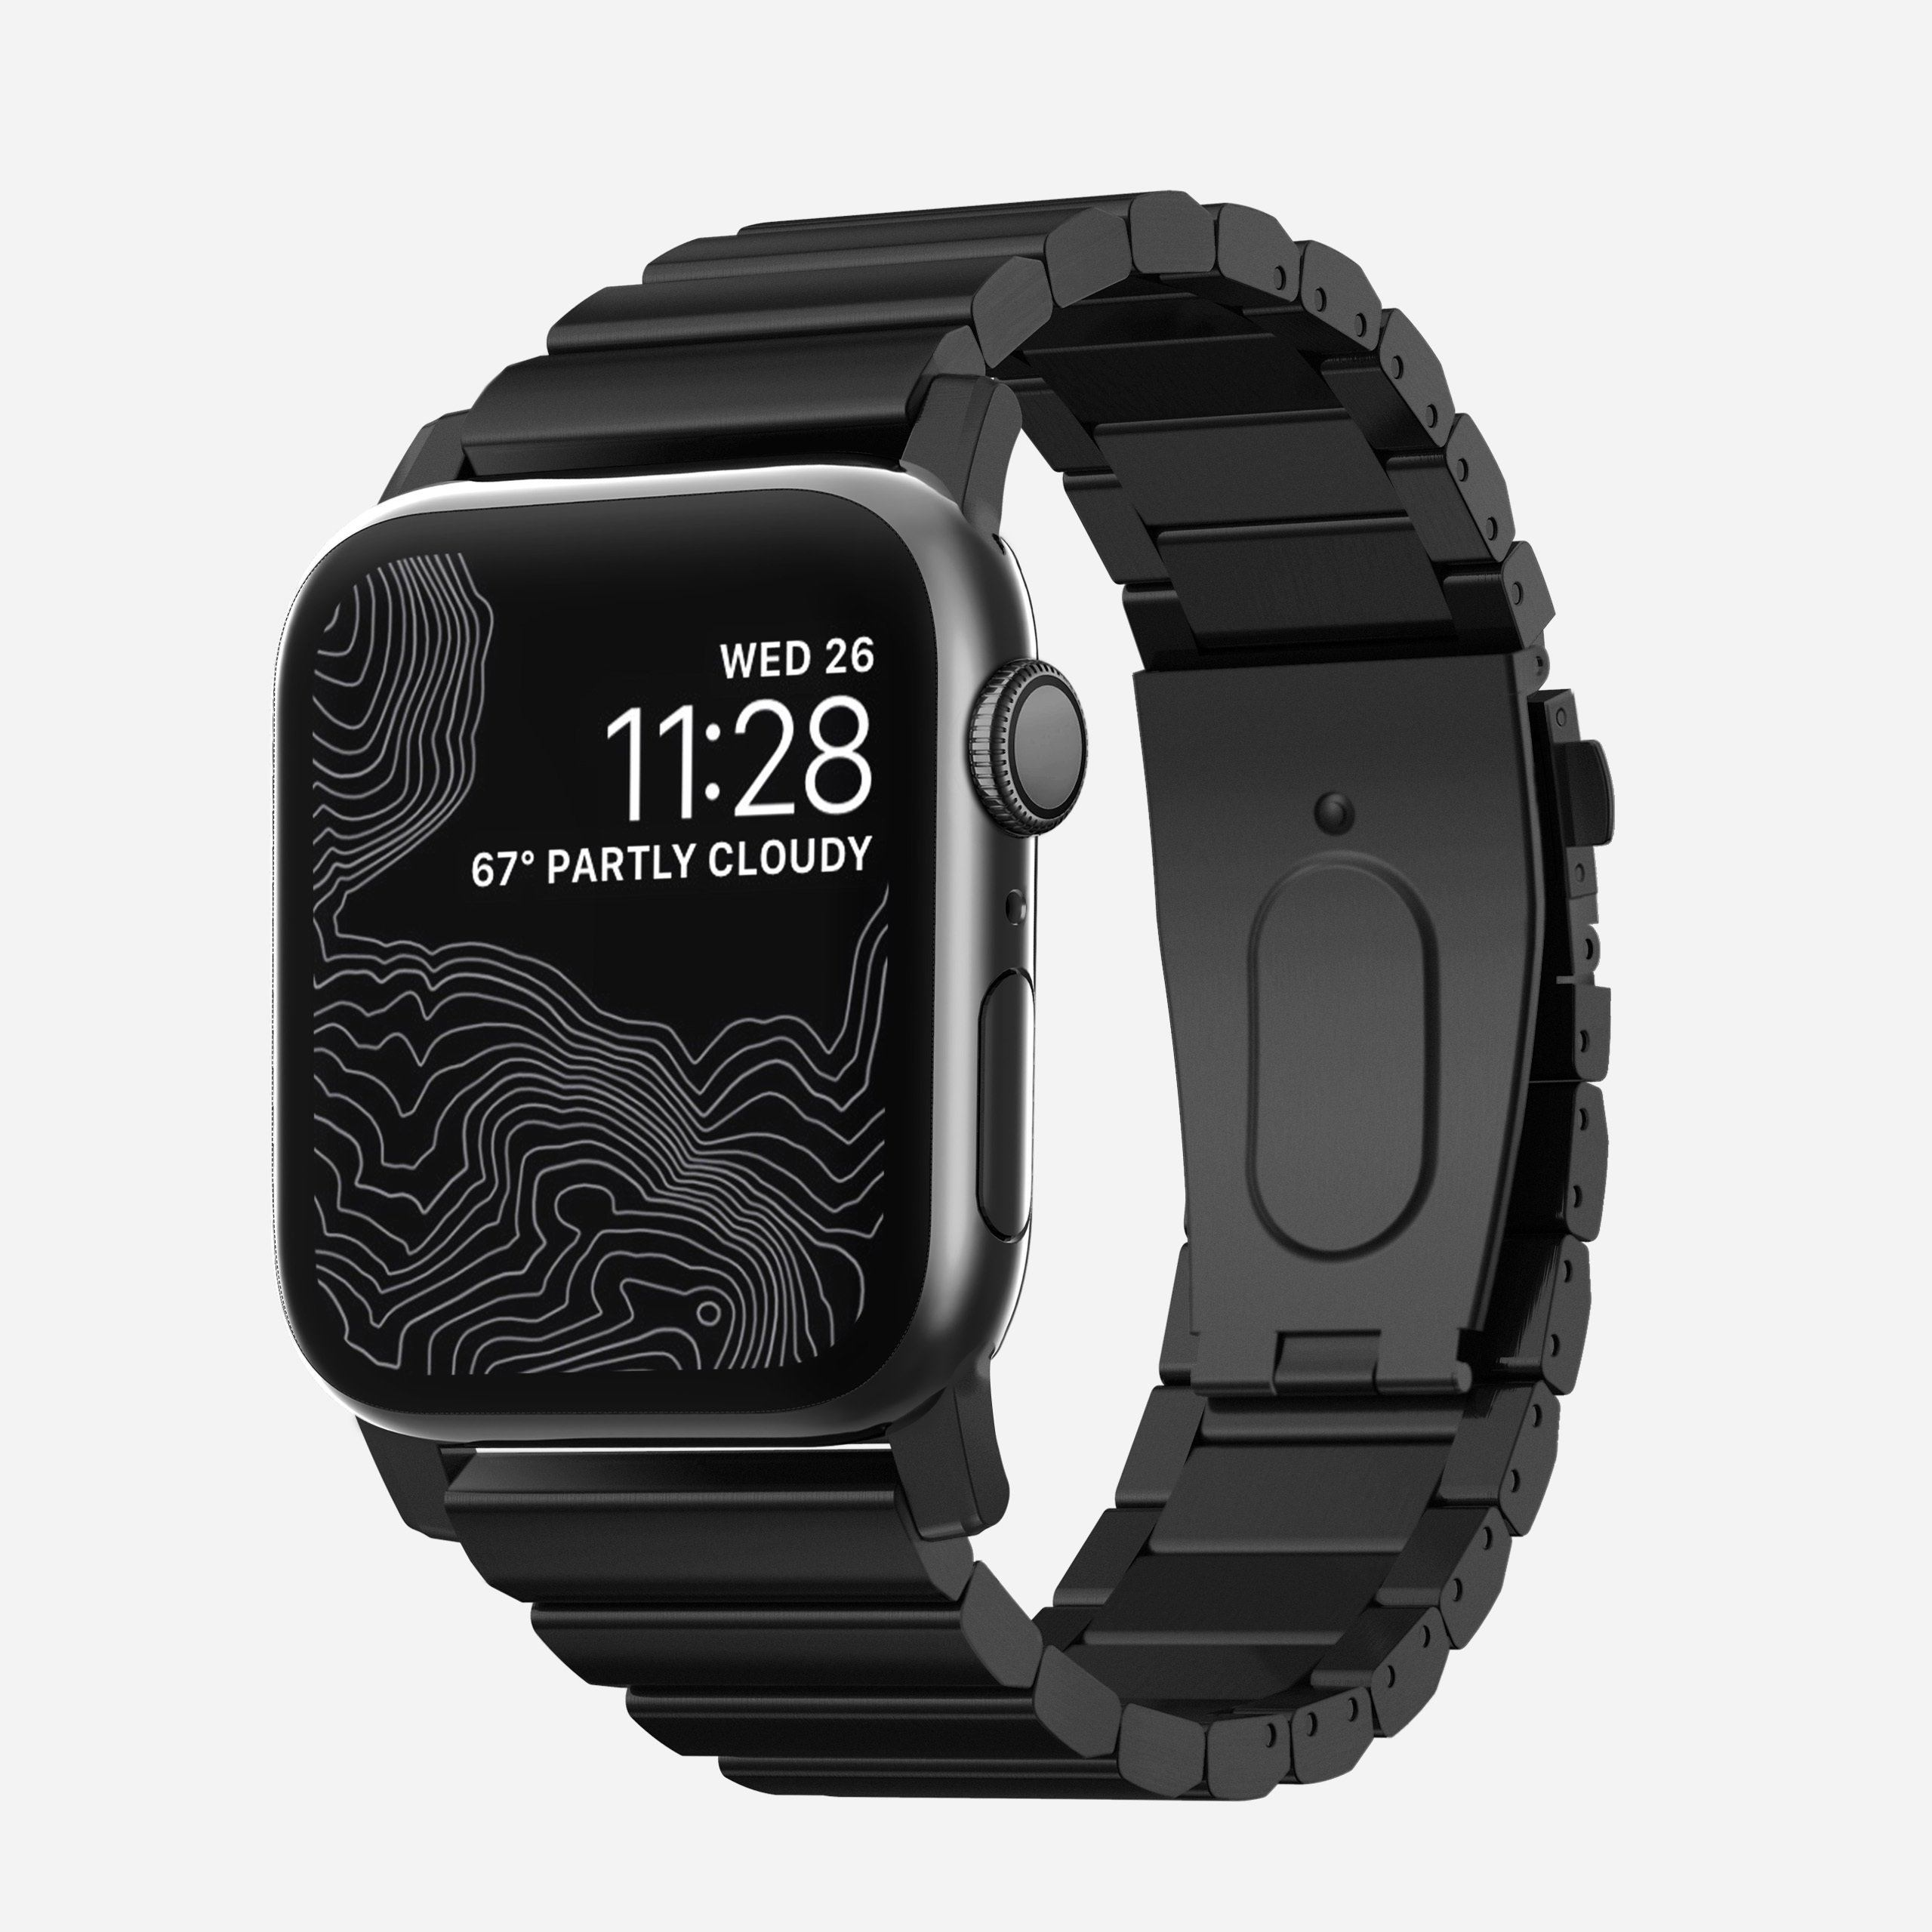 Apple Watch Stainless Steel Band, Black Hardware